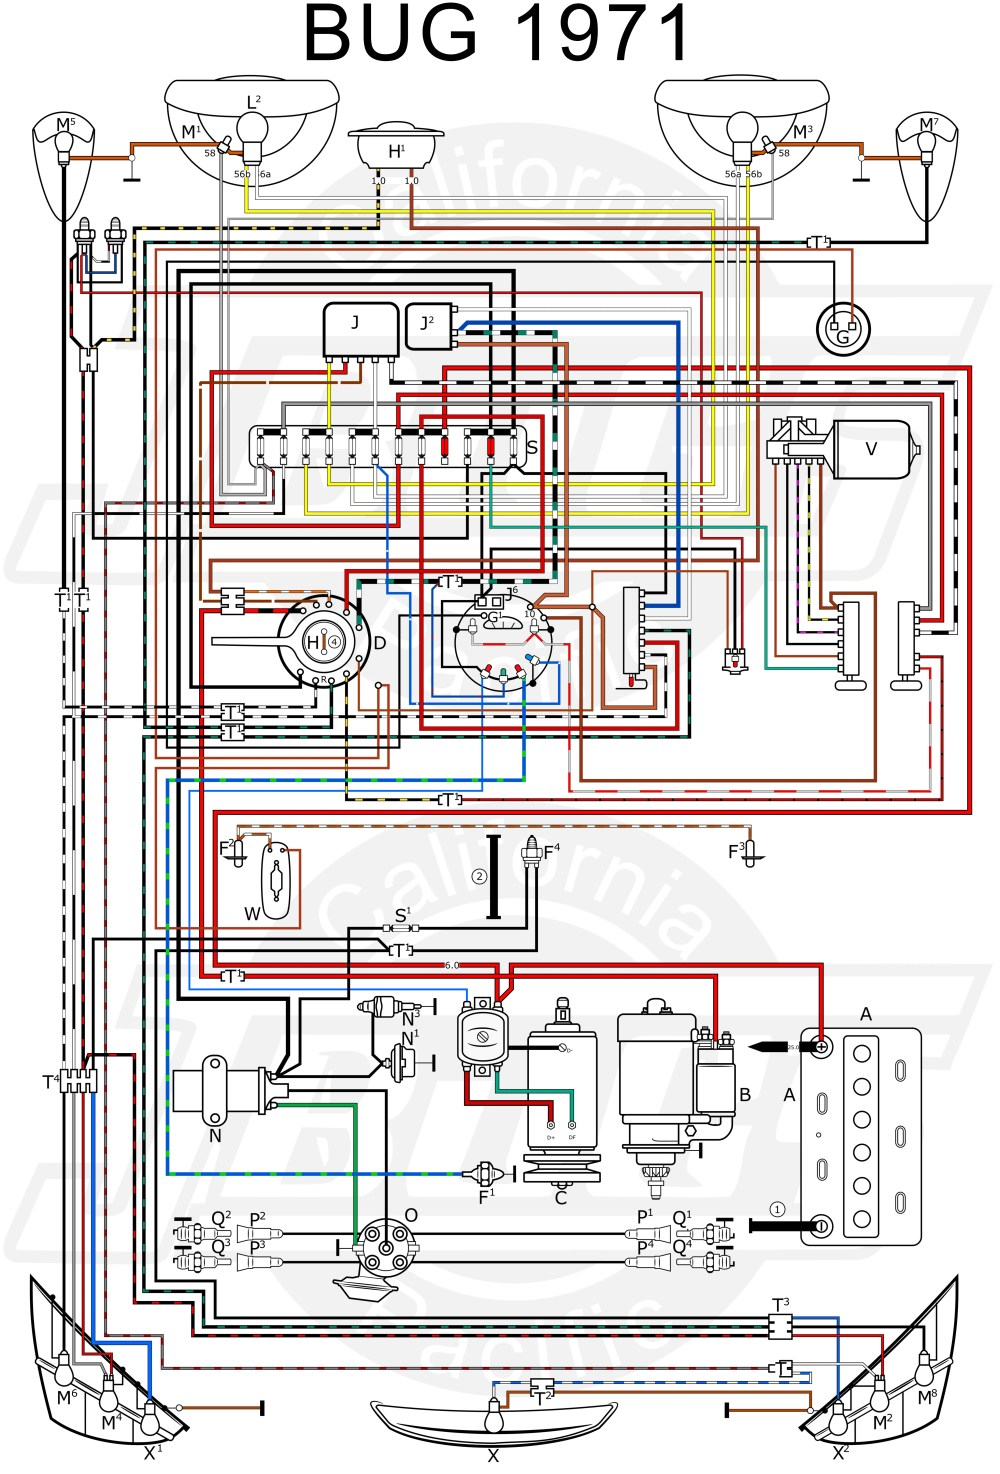 medium resolution of subaru ignition coil wiring diagram wiring diagram post subaru ignition coil wiring diagram wiring library 1971